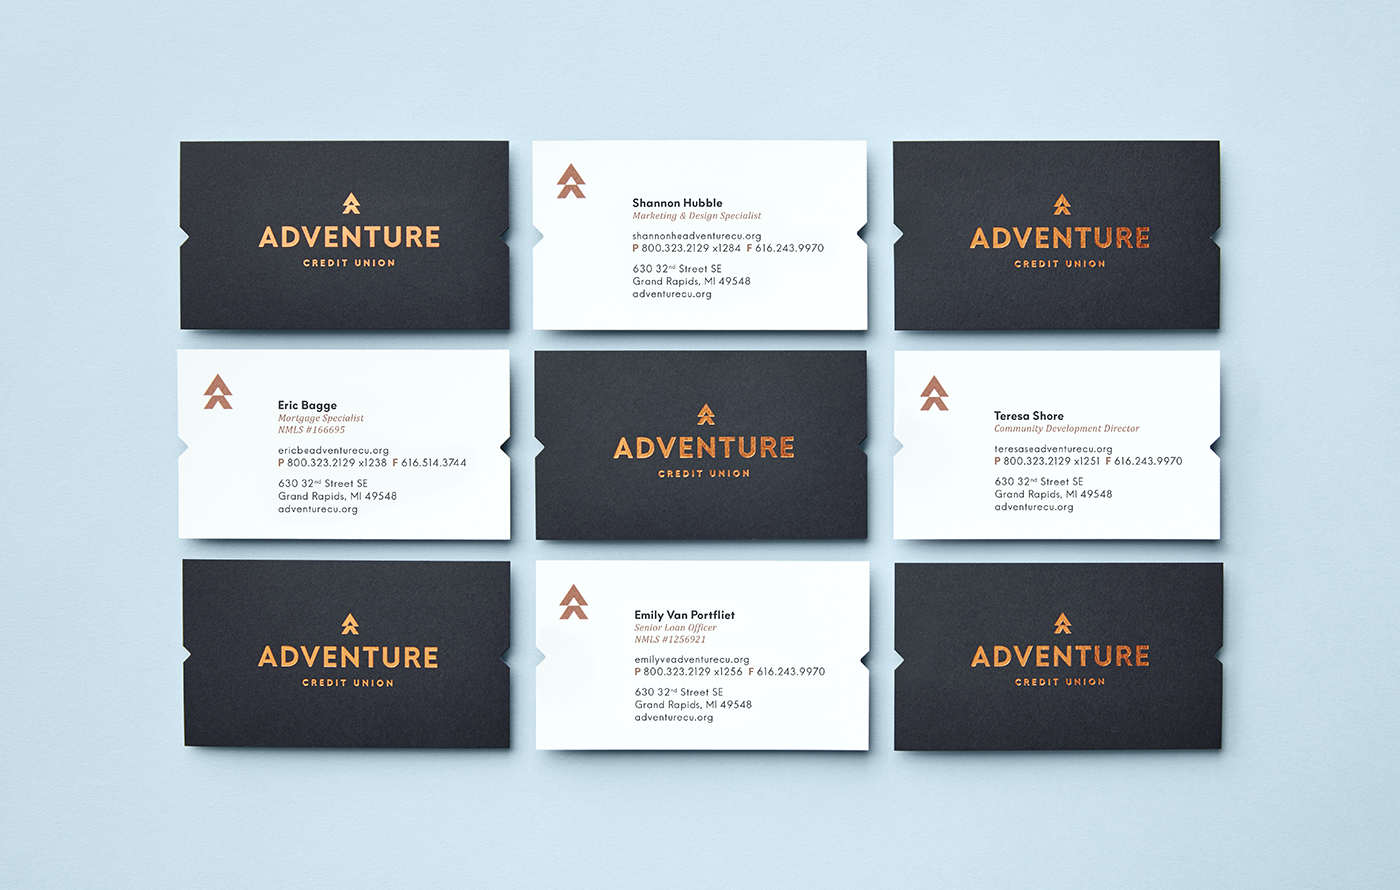 Adventure Credit Union business cards